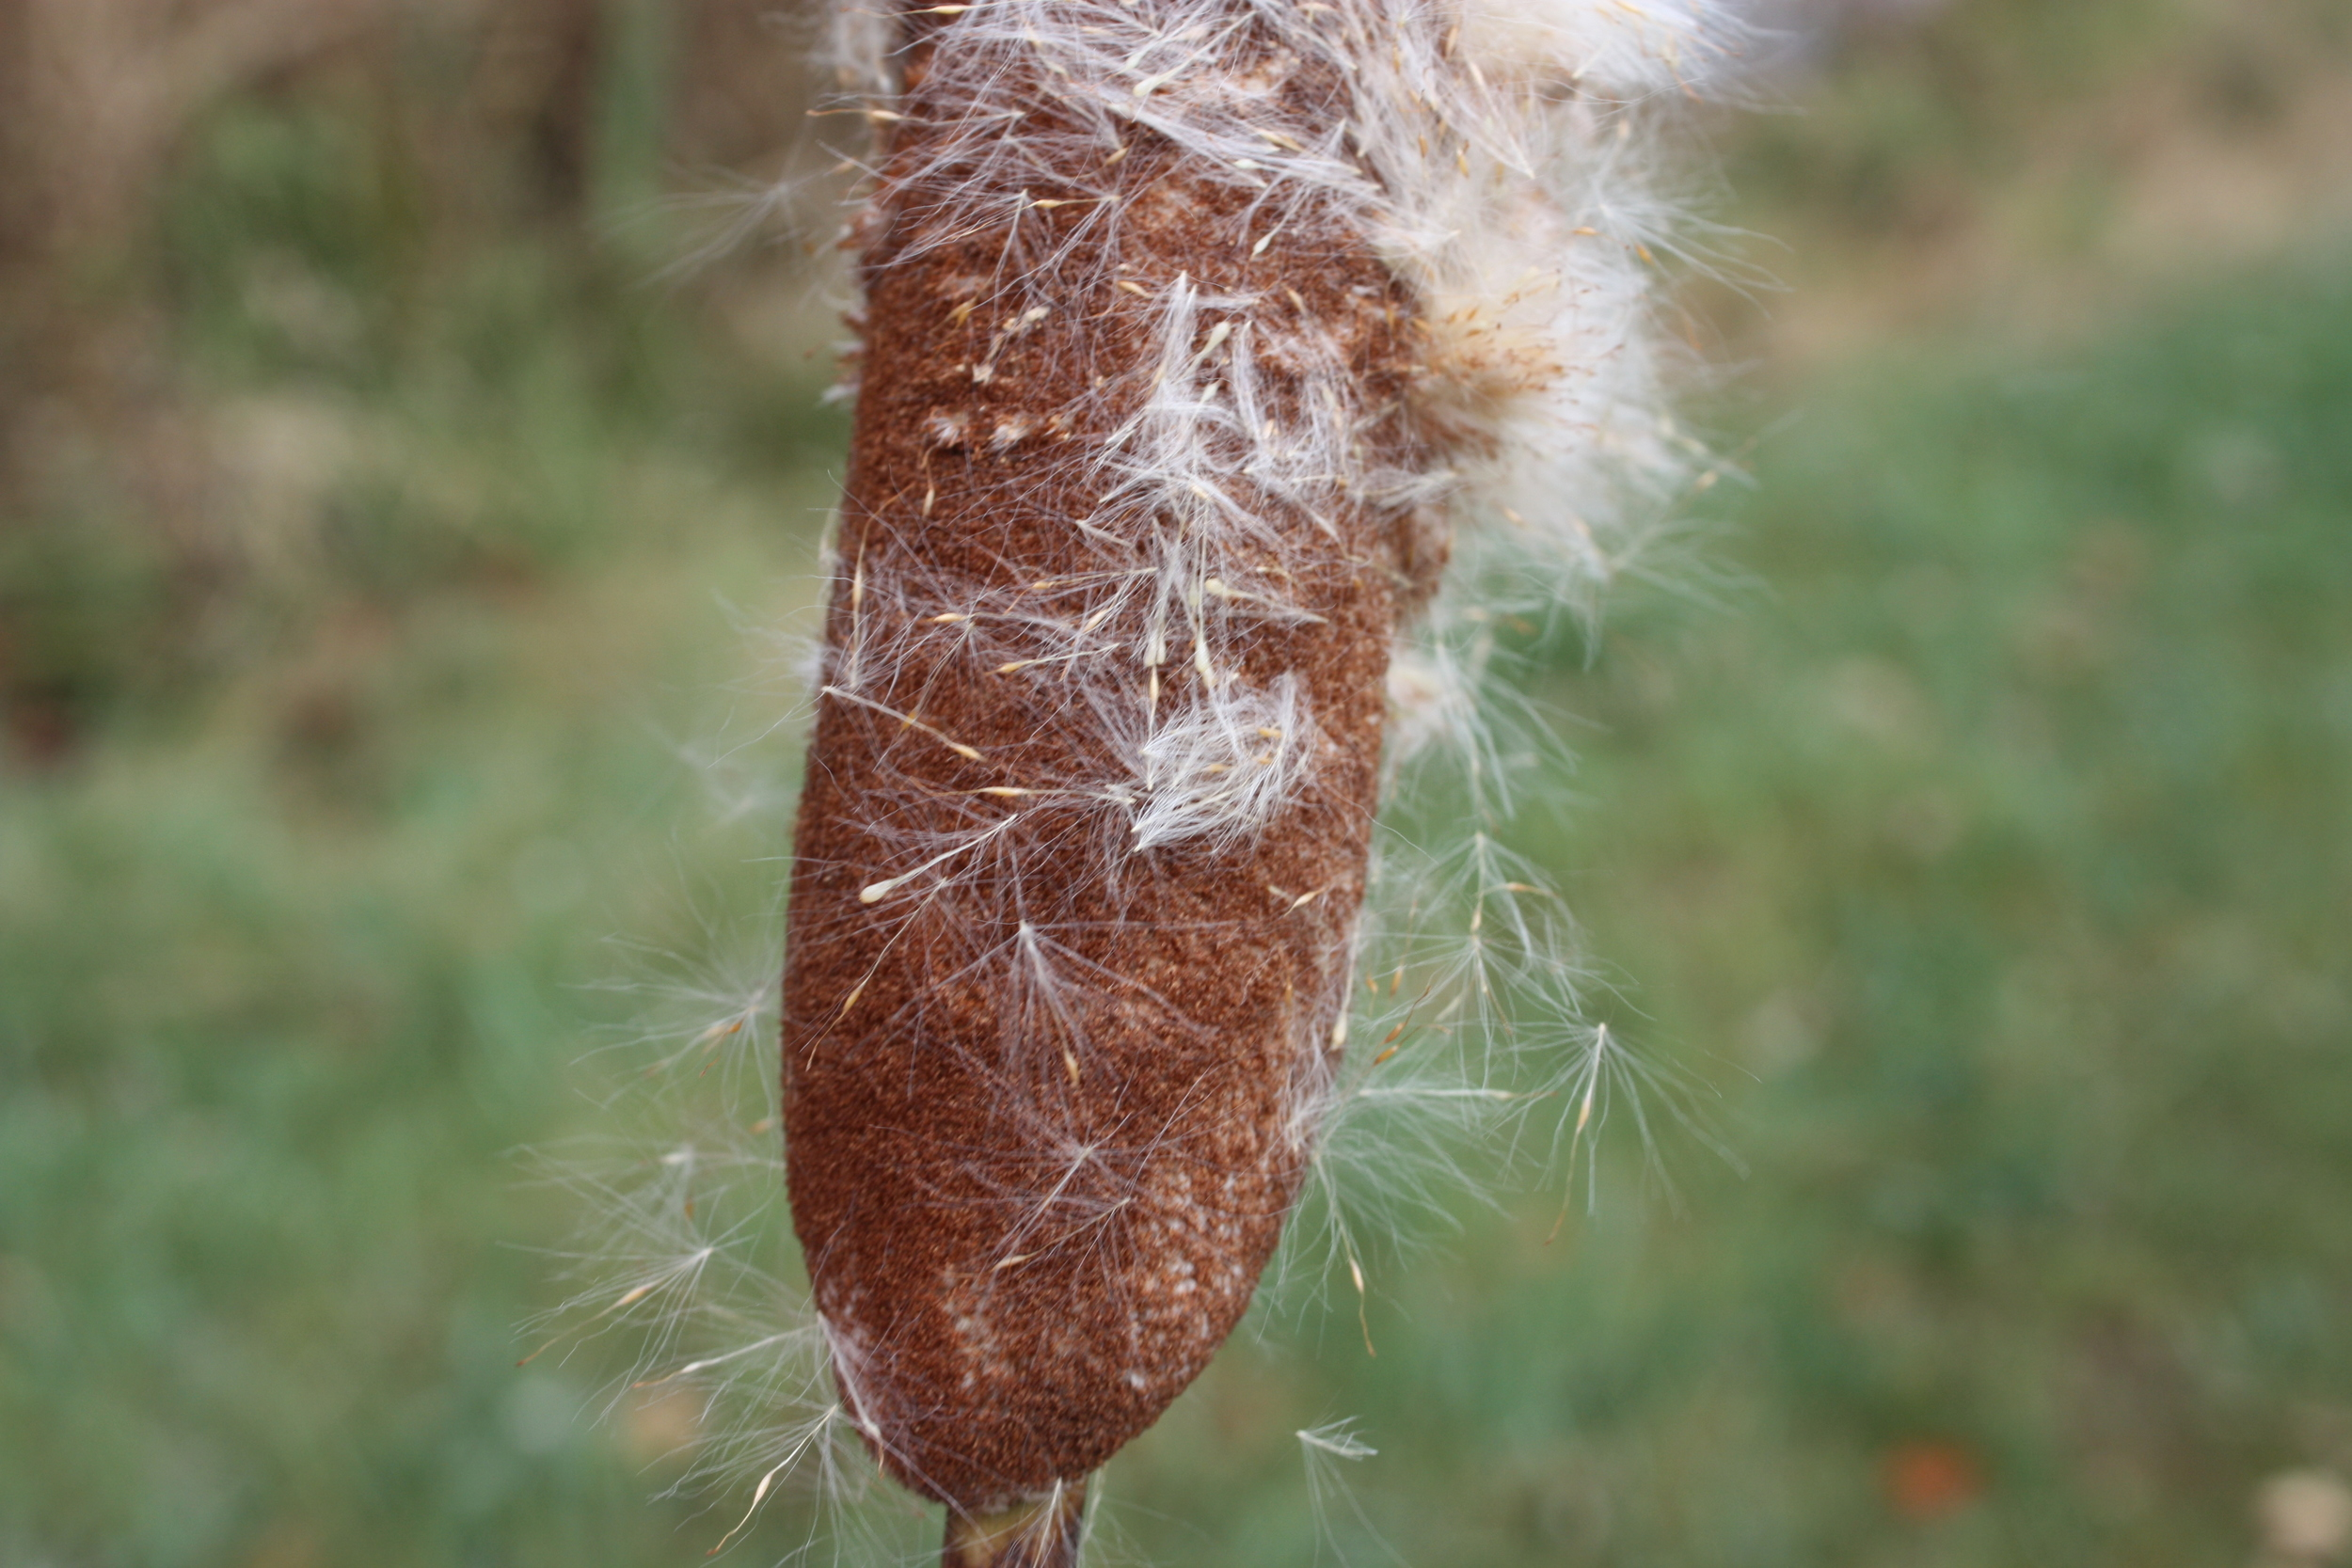 Typha  seeds are each up to 1.5mm long (USDA Forest Service database)